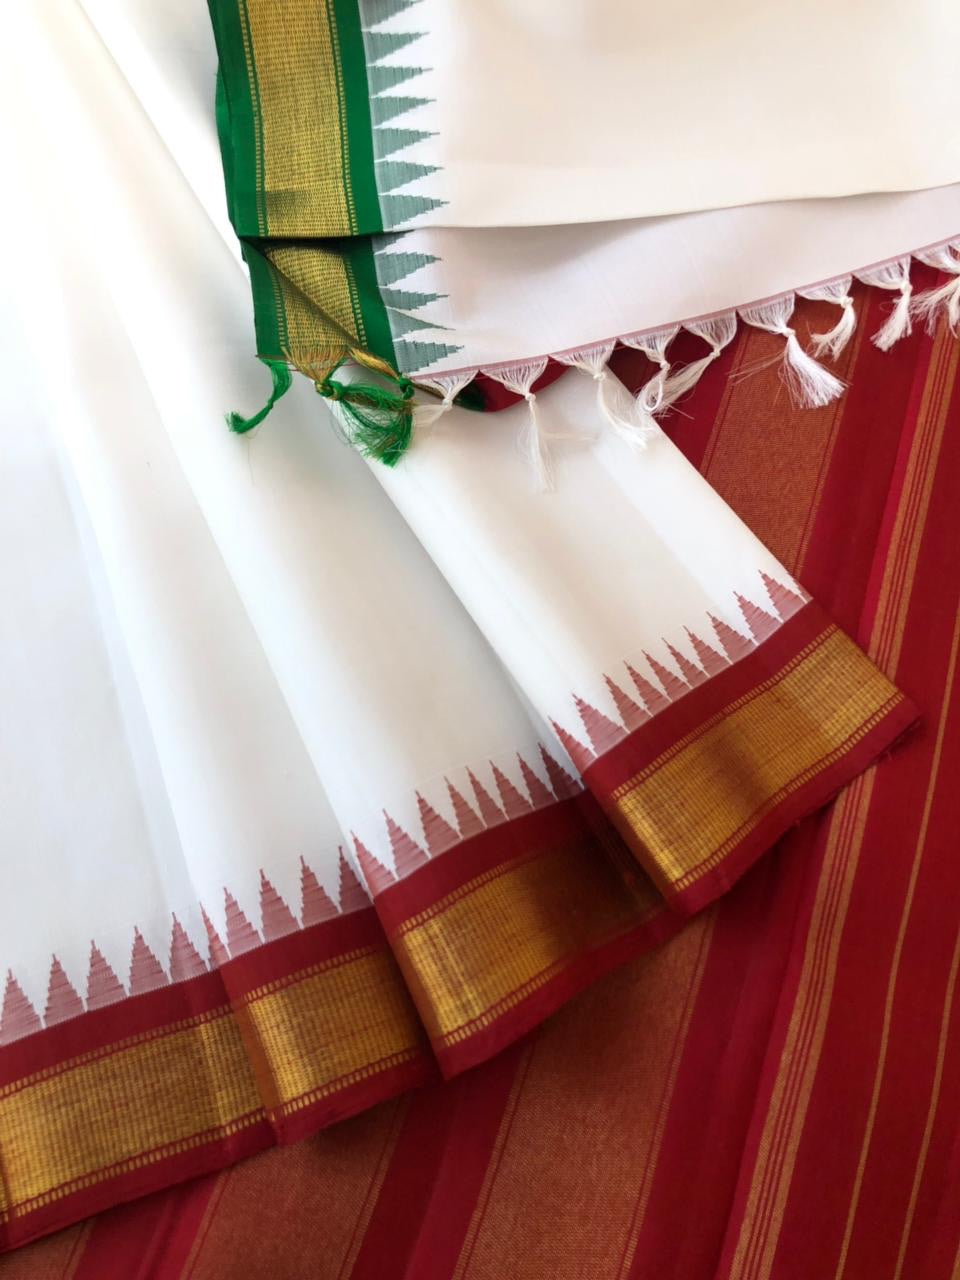 Traditional korvai Kanchivaram - A rare find pure white korvai pure zari kanchivaram with traditional red and green ganga jammuna woven korvai borders